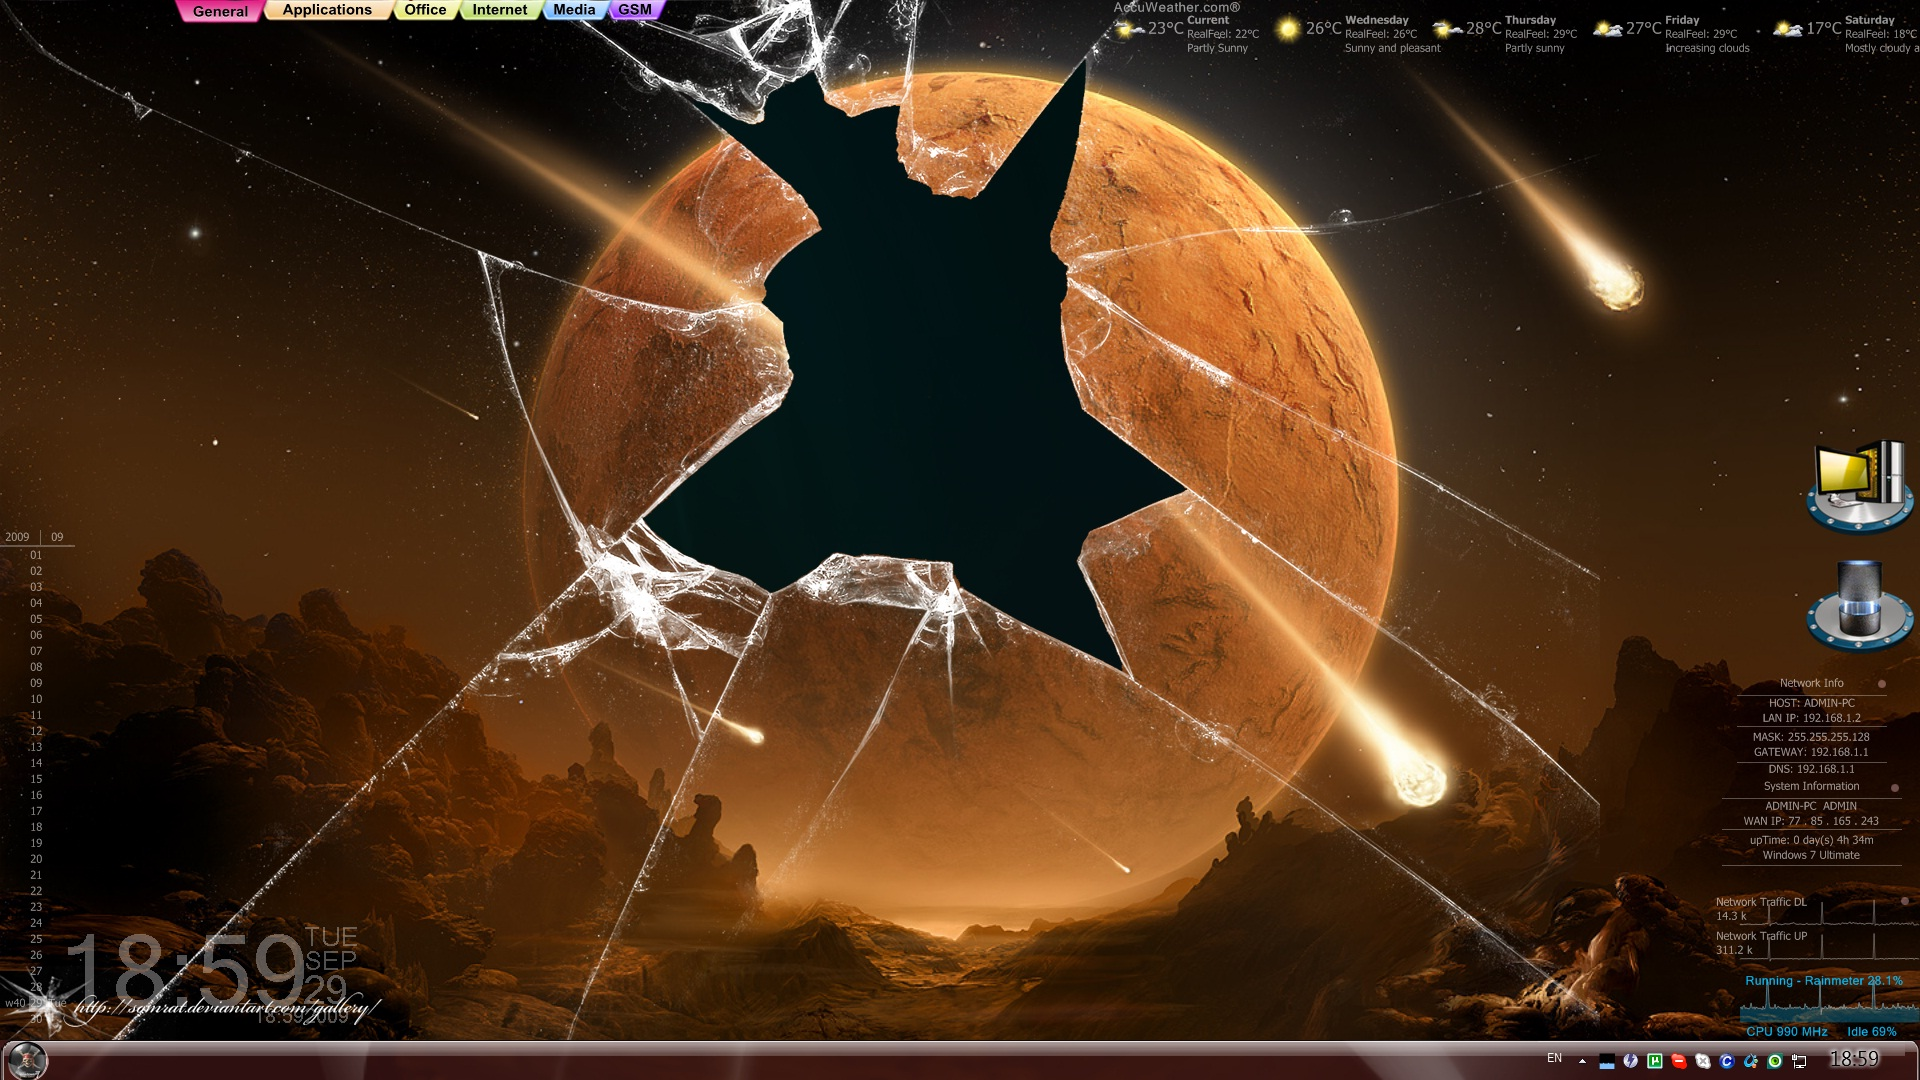 Planet Broken Screen Wallpaper Photo